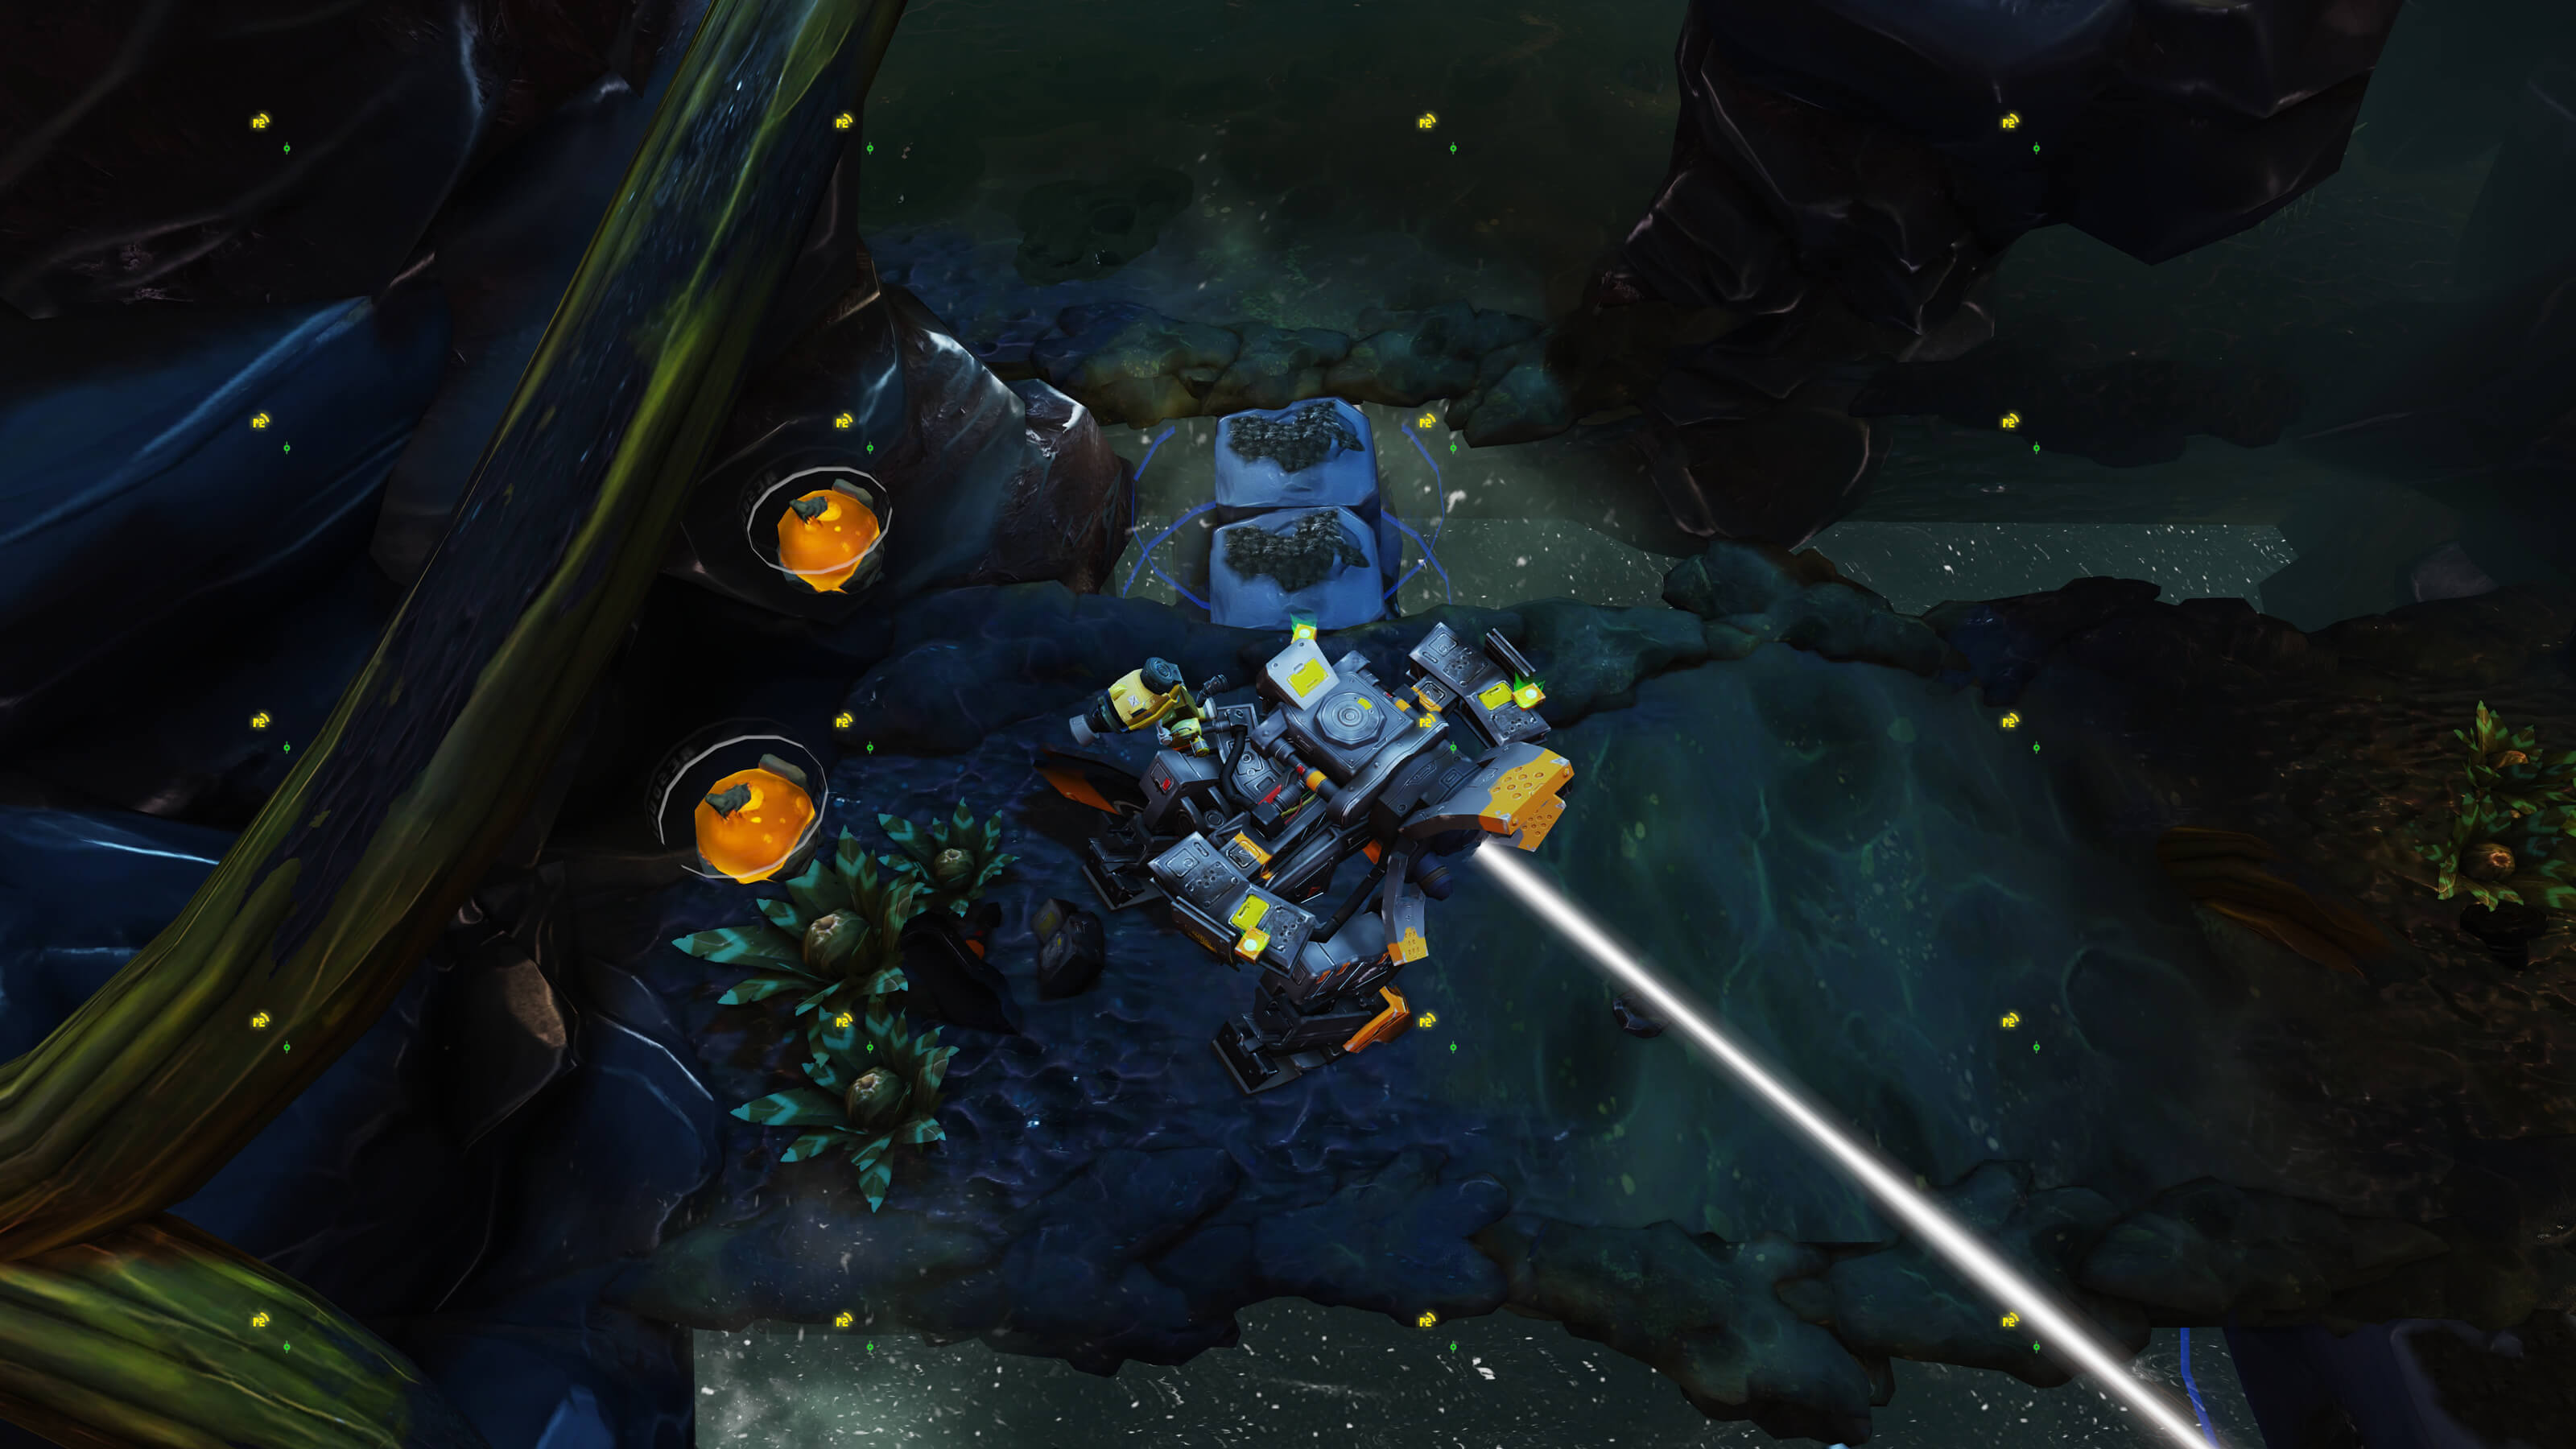 A battle mech shoots a white laser in an underground passage